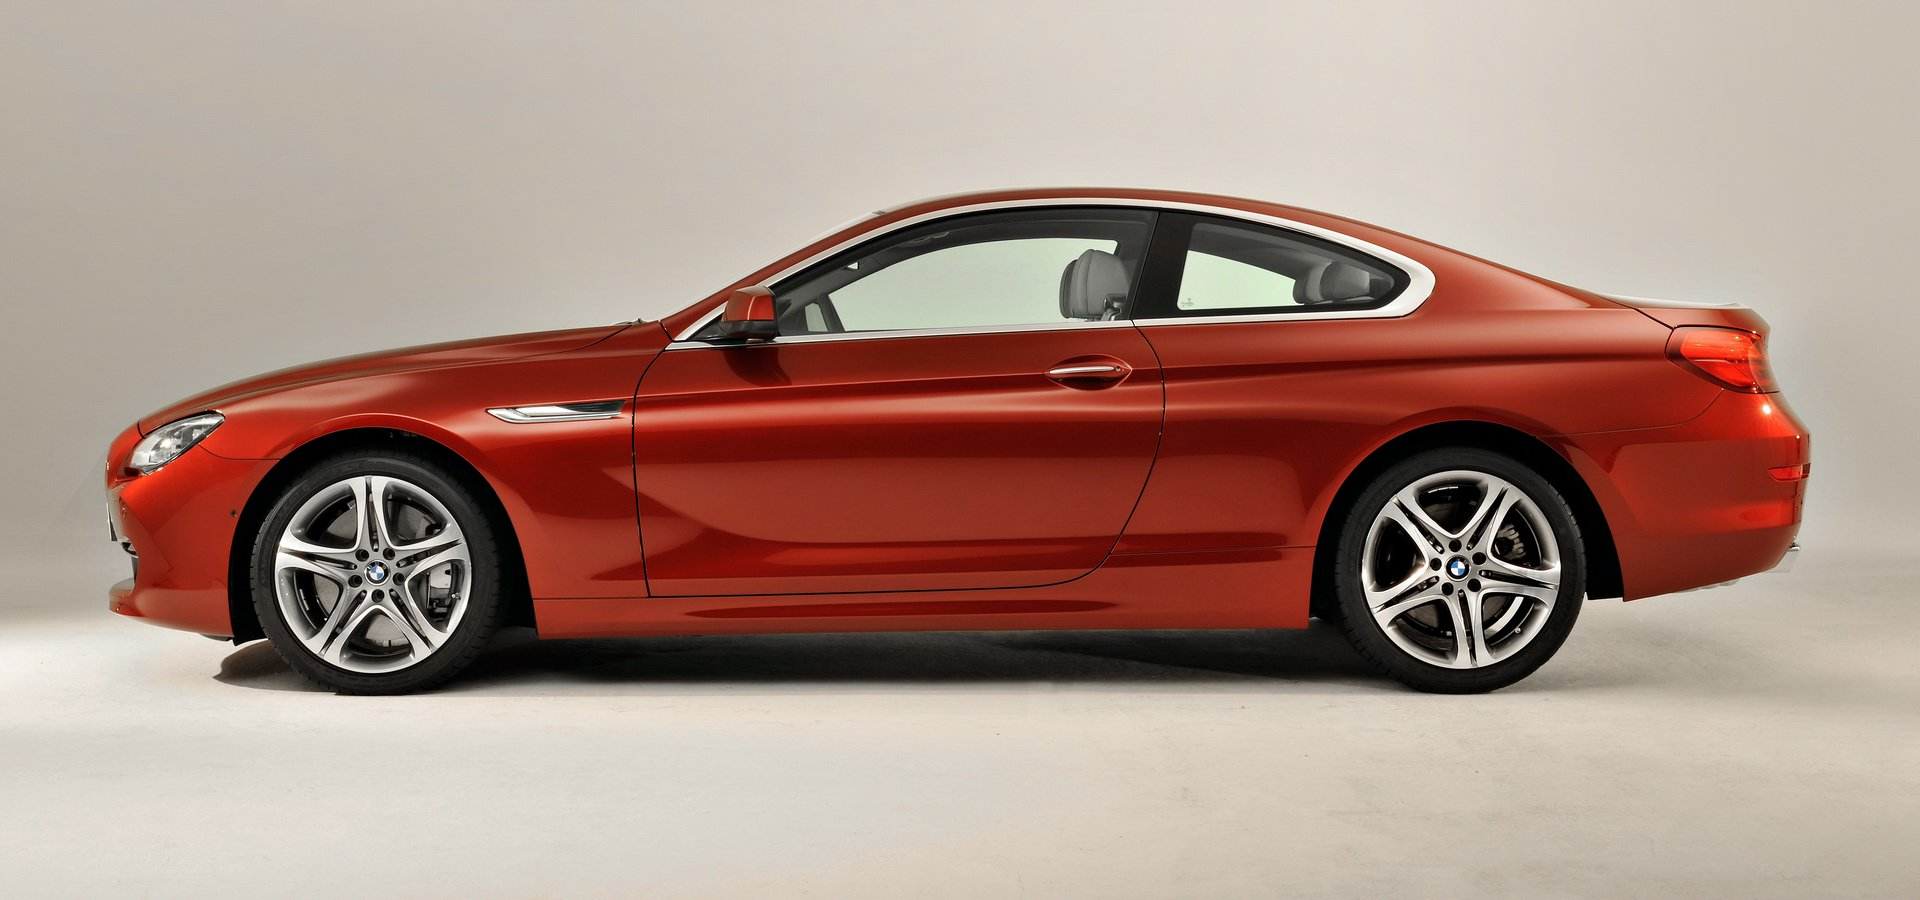 984f4d0d-bmw-8-series-6-series-visual-comp-4.jpg